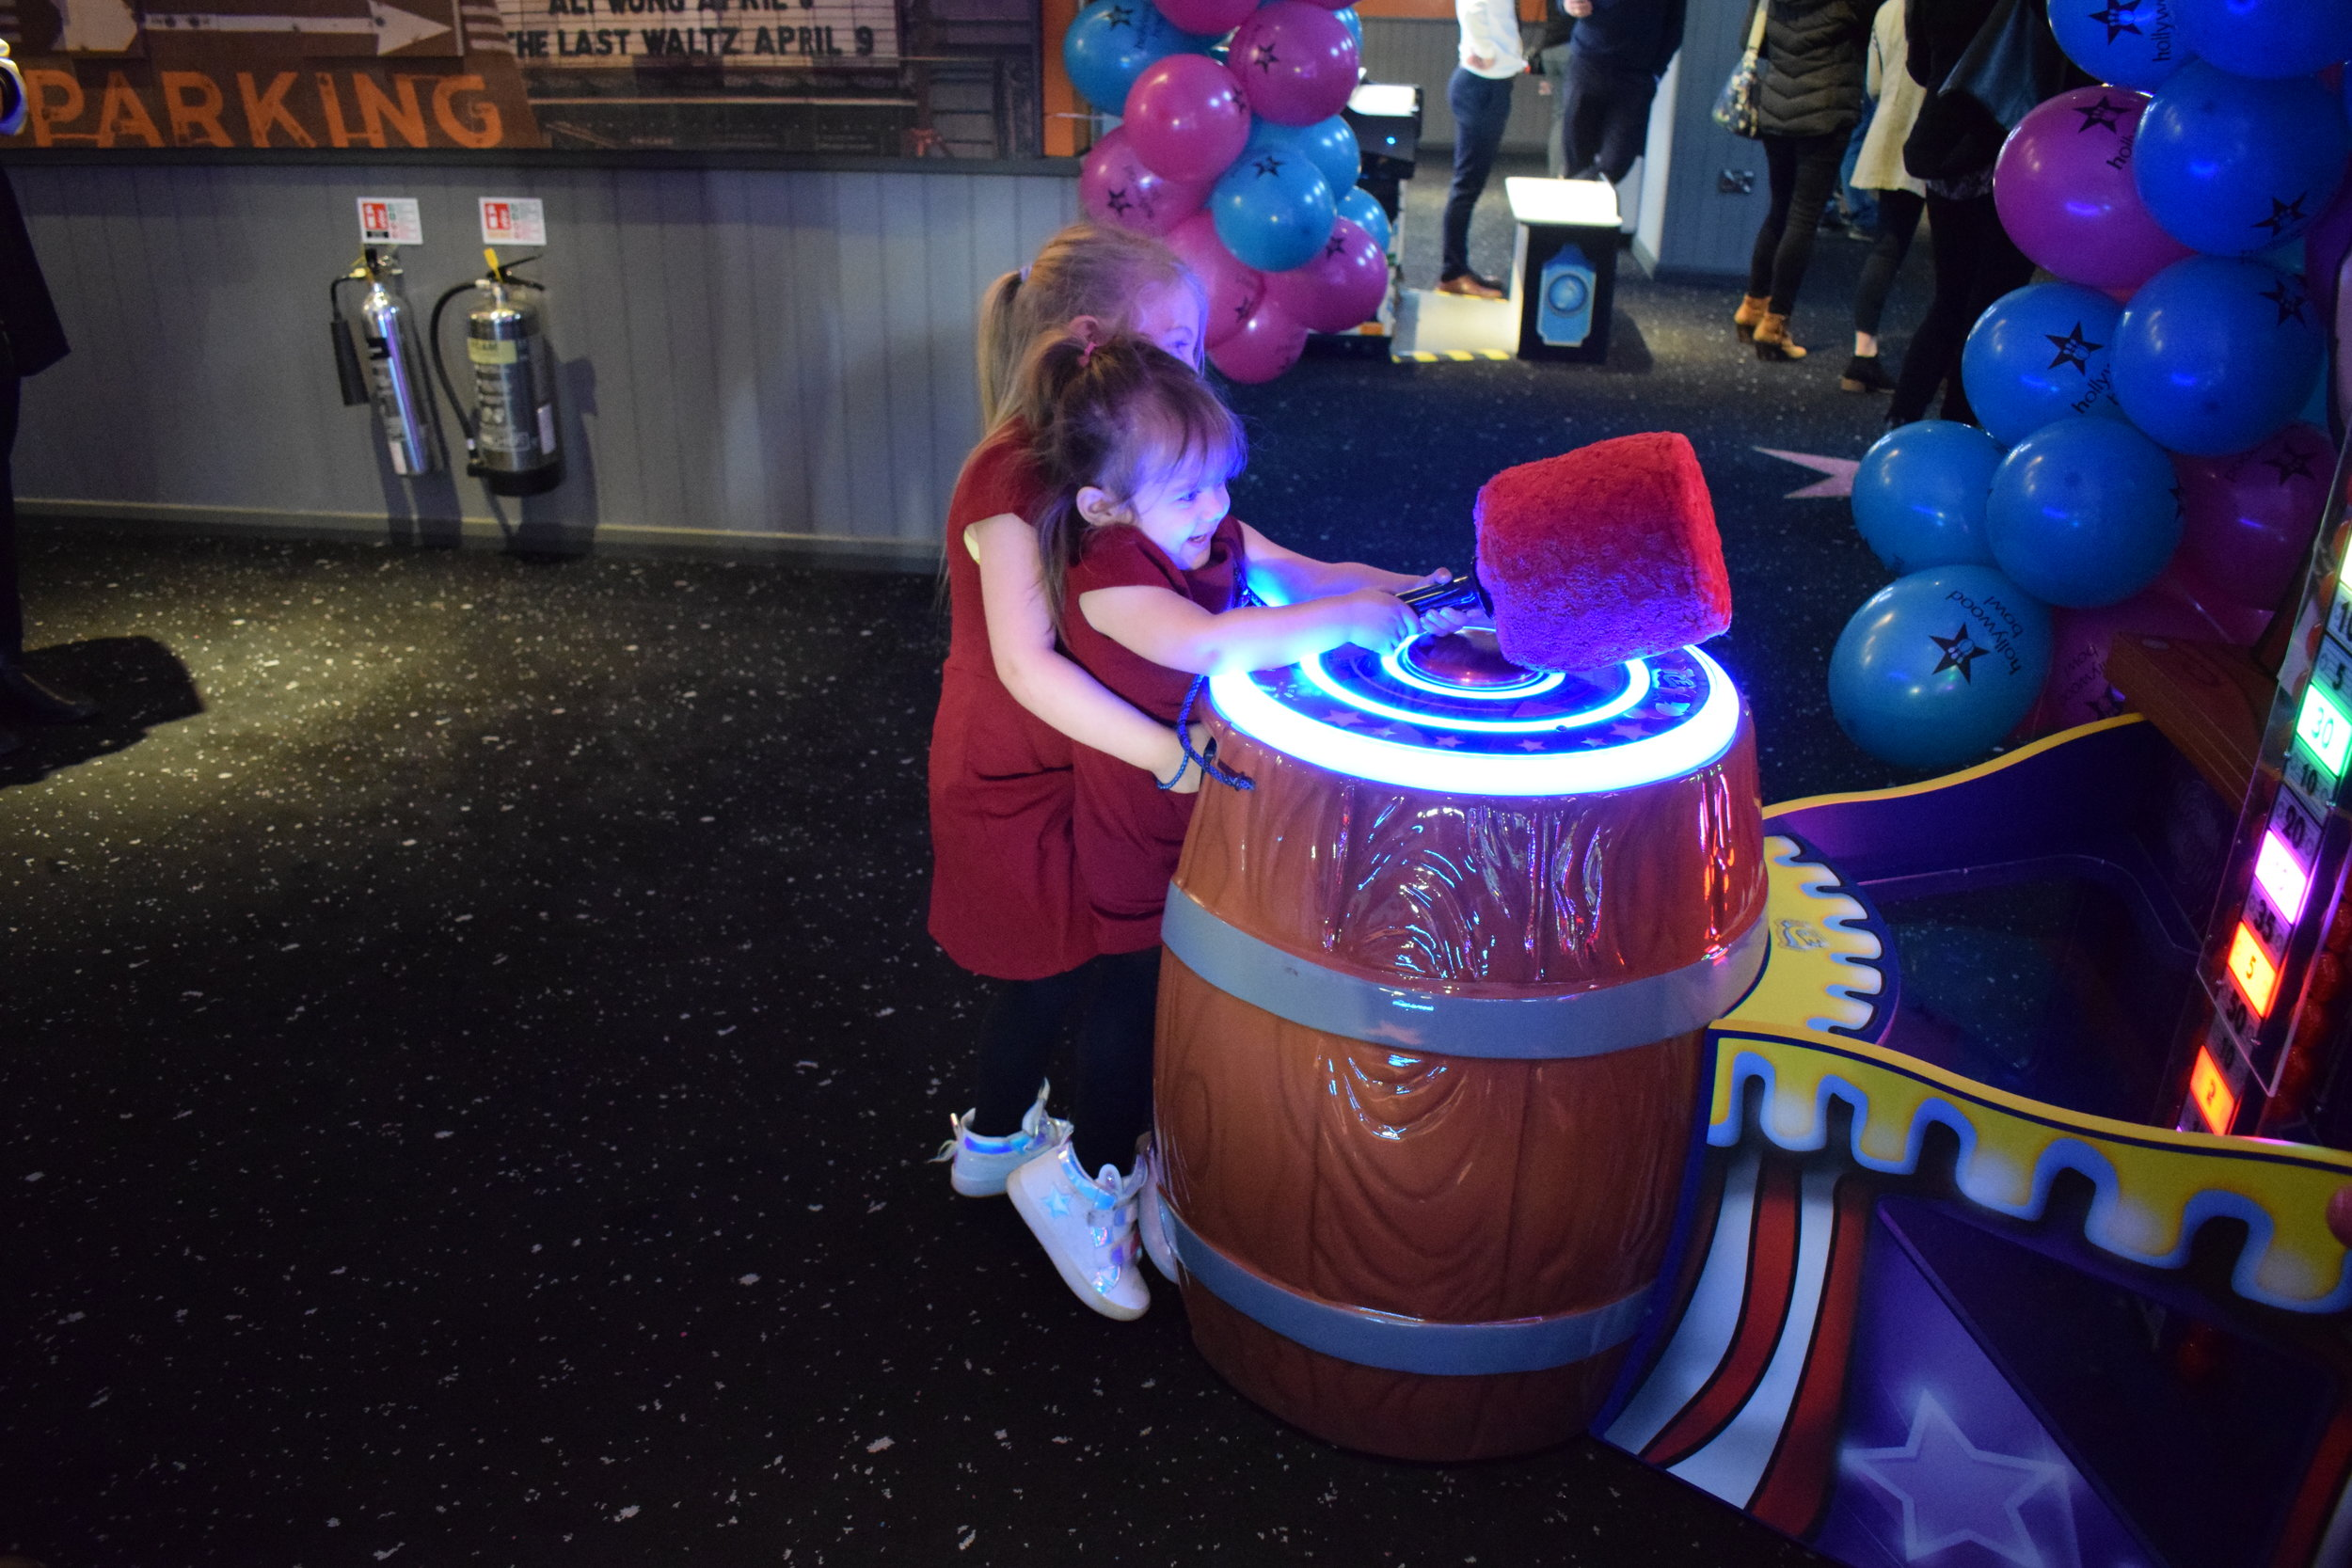 Arcade games at Hollywood Bowl, Intu Watford